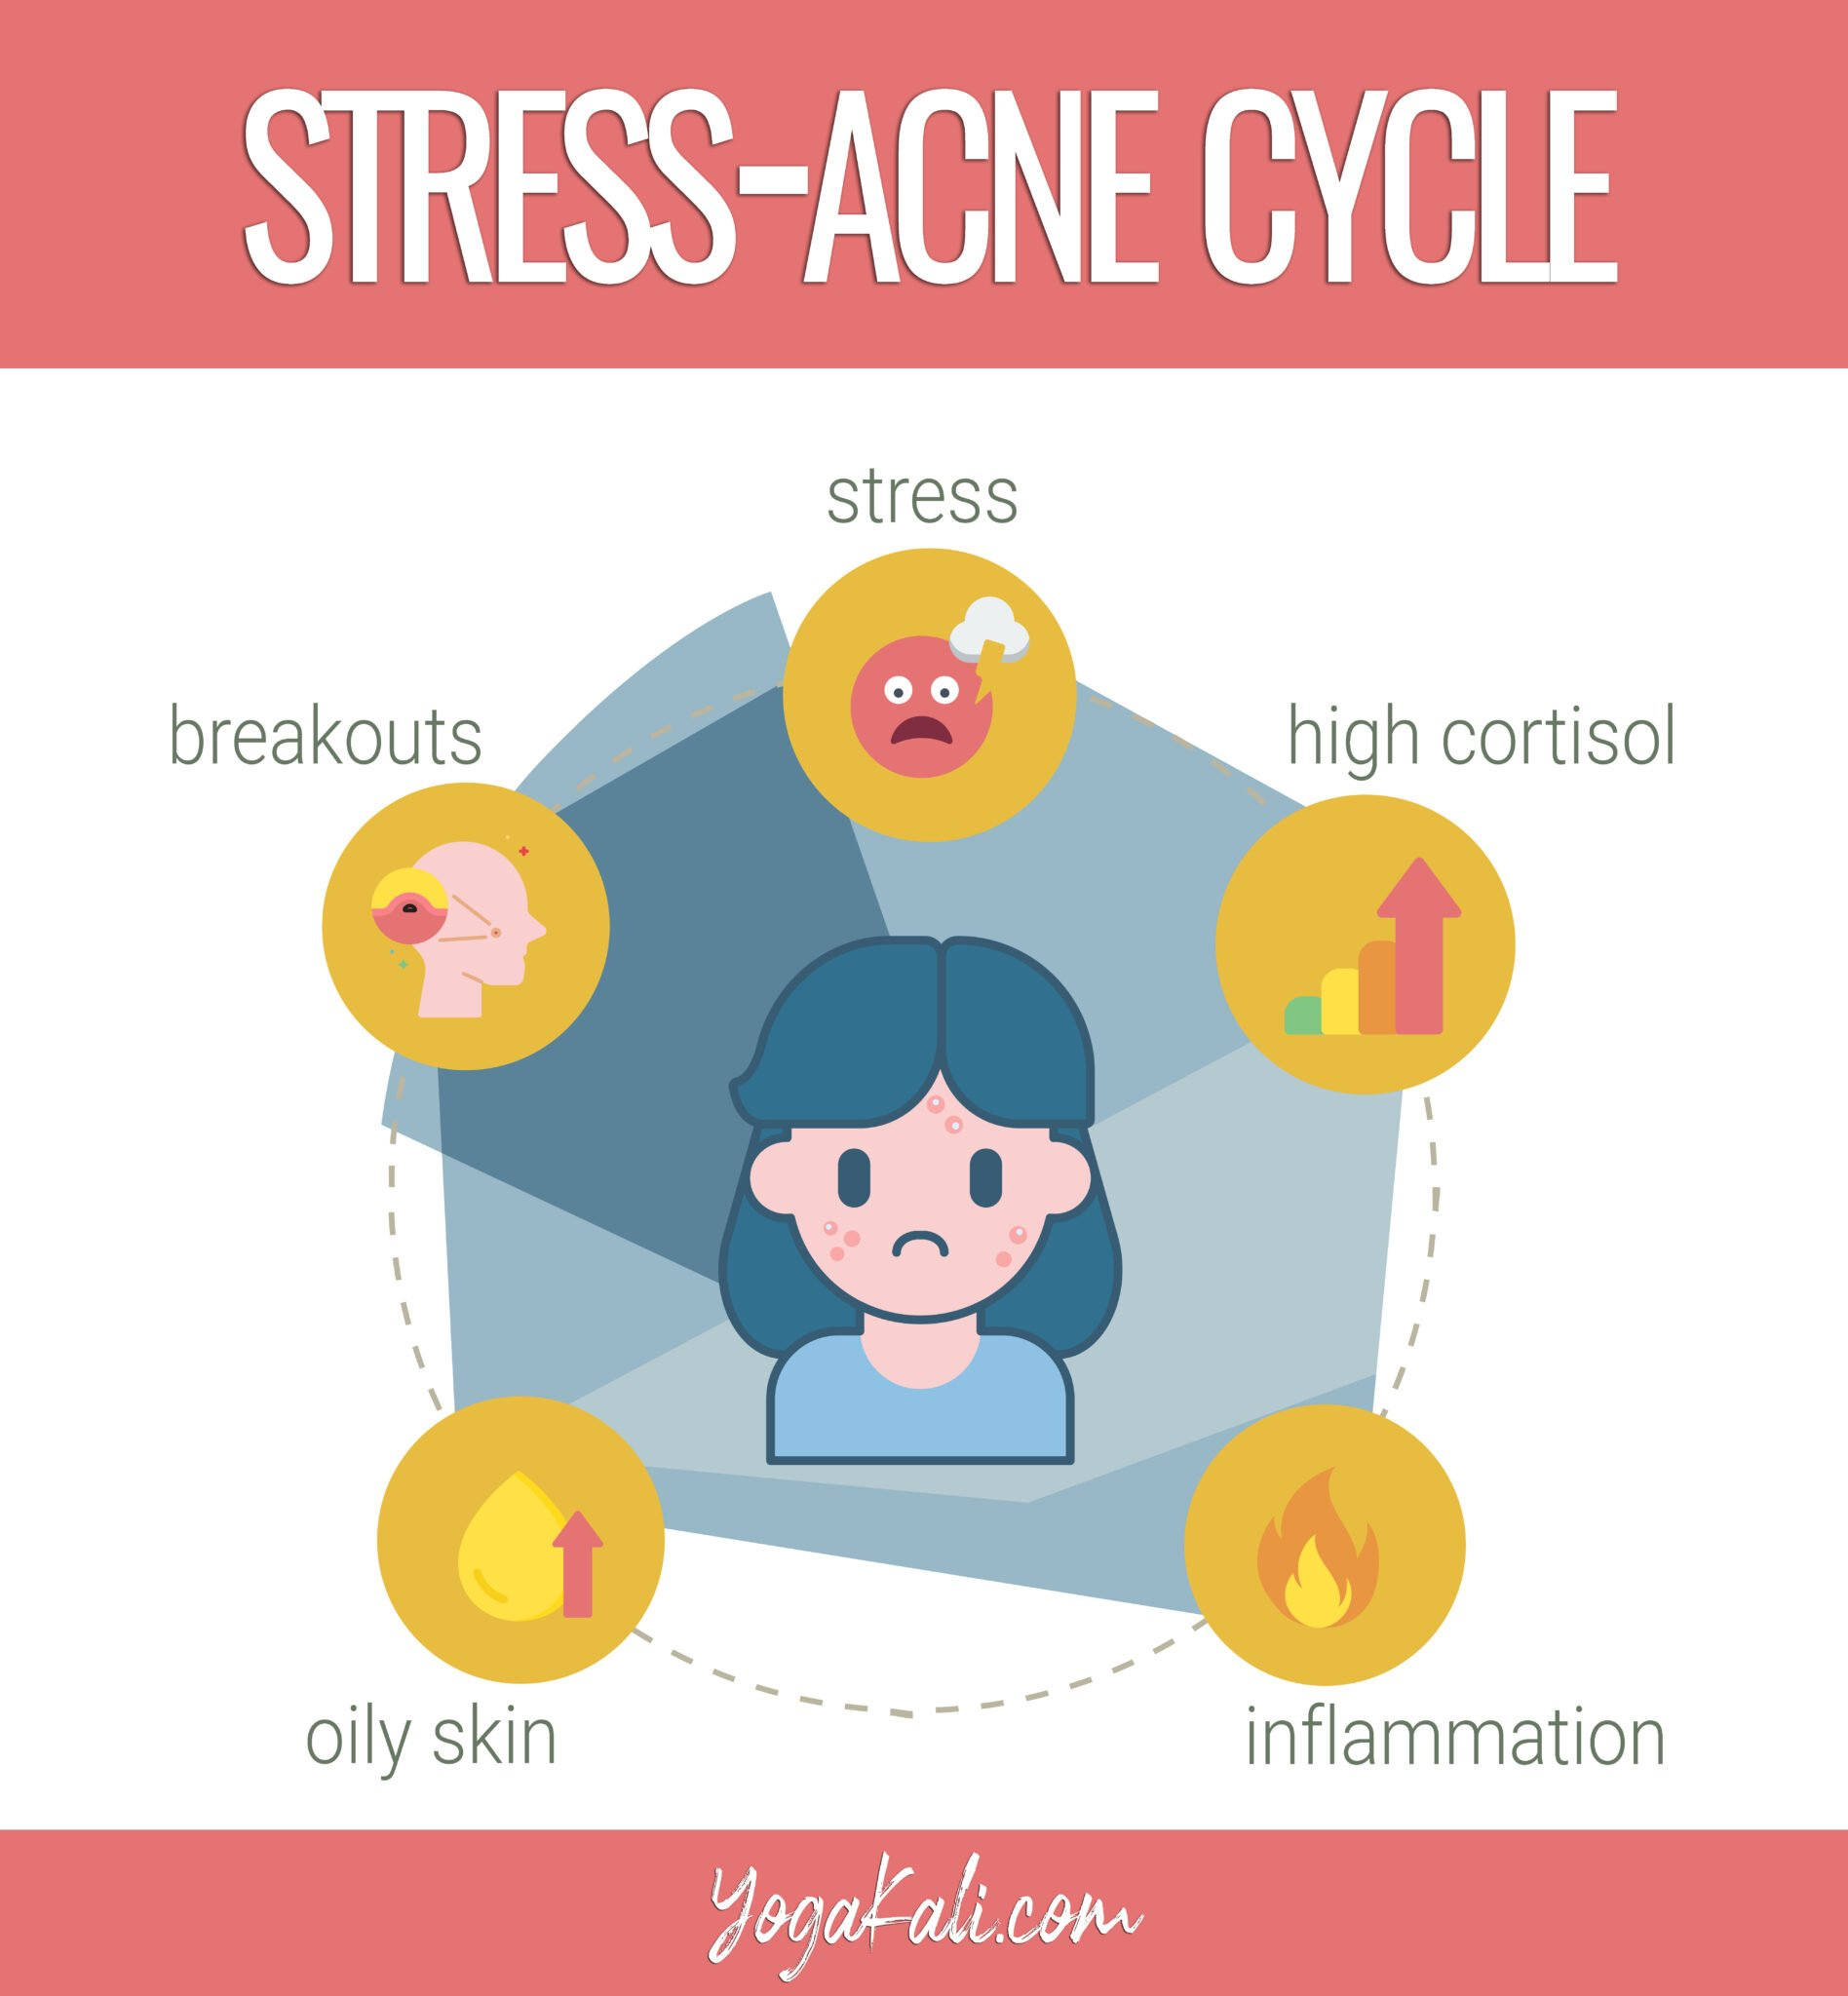 Stress-acne cycle